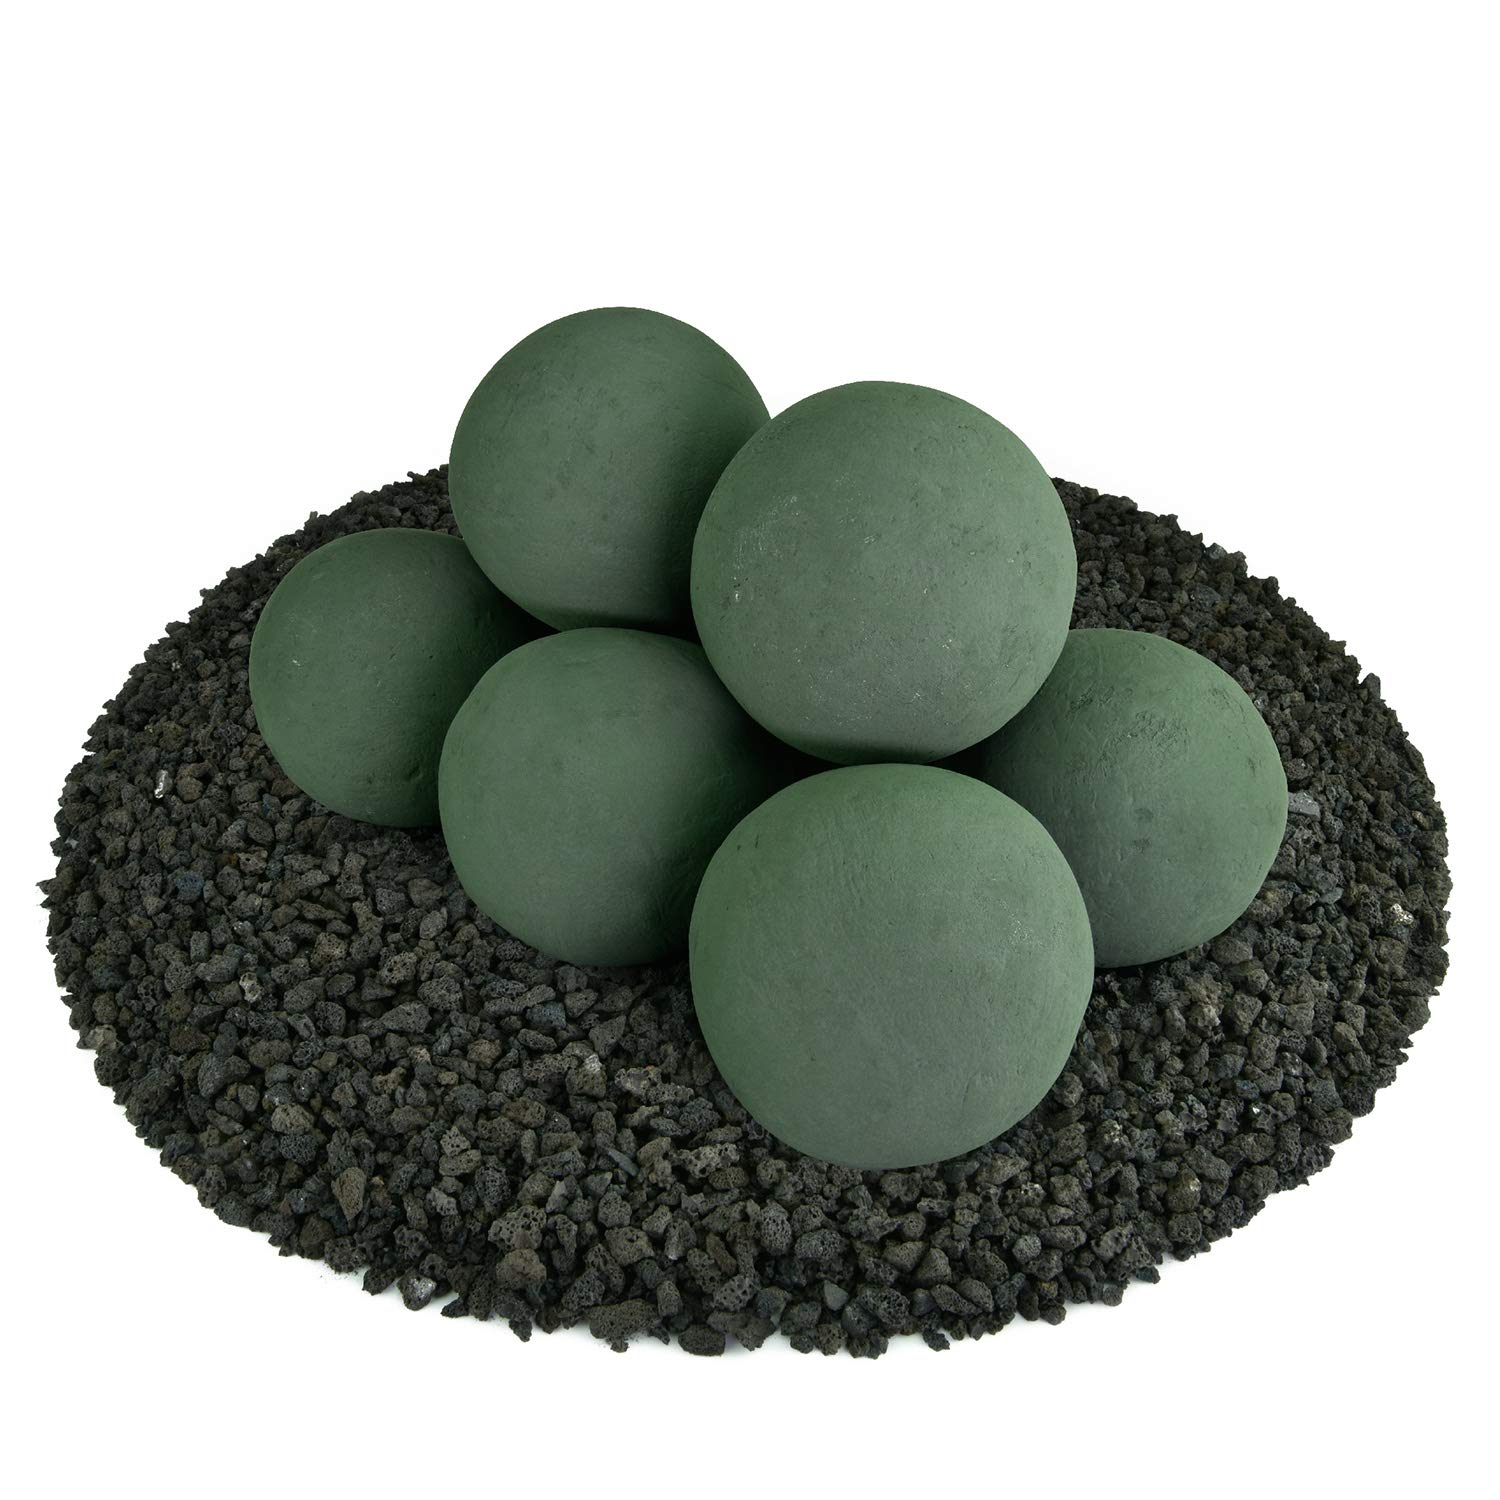 Ceramic Fire Balls | Set of 8 | Modern Accessory for Indoor and Outdoor Fire Pits or Fireplaces – Brushed Concrete Look | Slate Green, 5 Inch